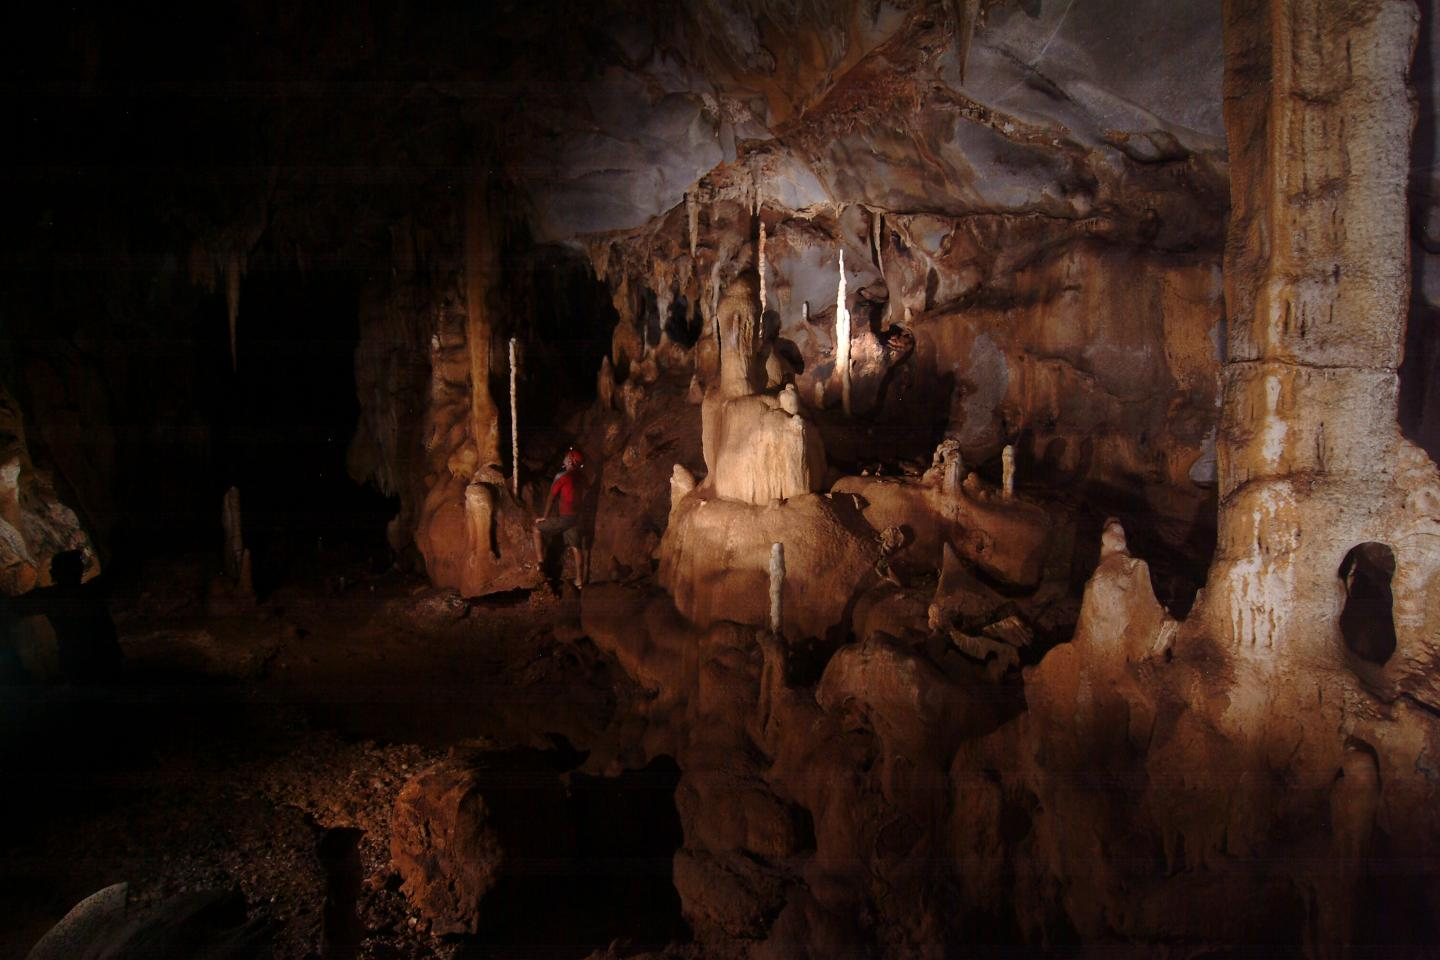 This is the room in the cave where the scientists obtained the stalagmite used in the research CREDIT Raf Rios